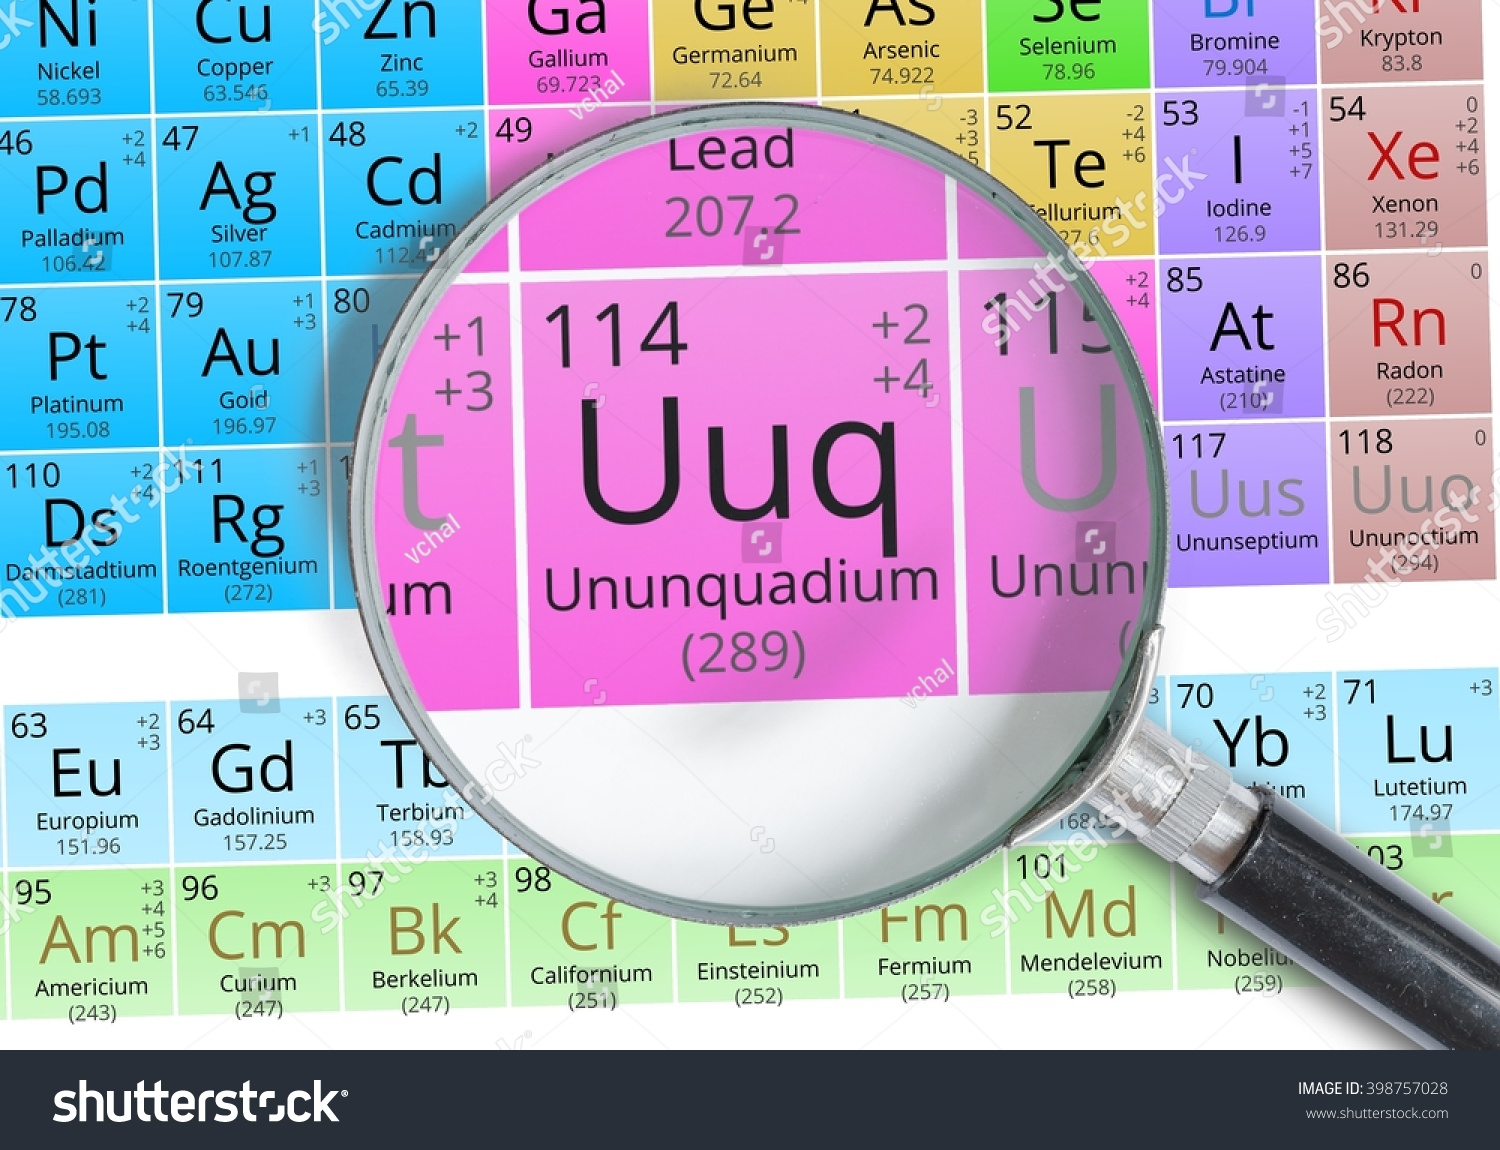 Ununquadium symbol uuq element periodic table stock photo edit now ununquadium symbol uuq element of the periodic table zoomed with magnifying glass urtaz Image collections